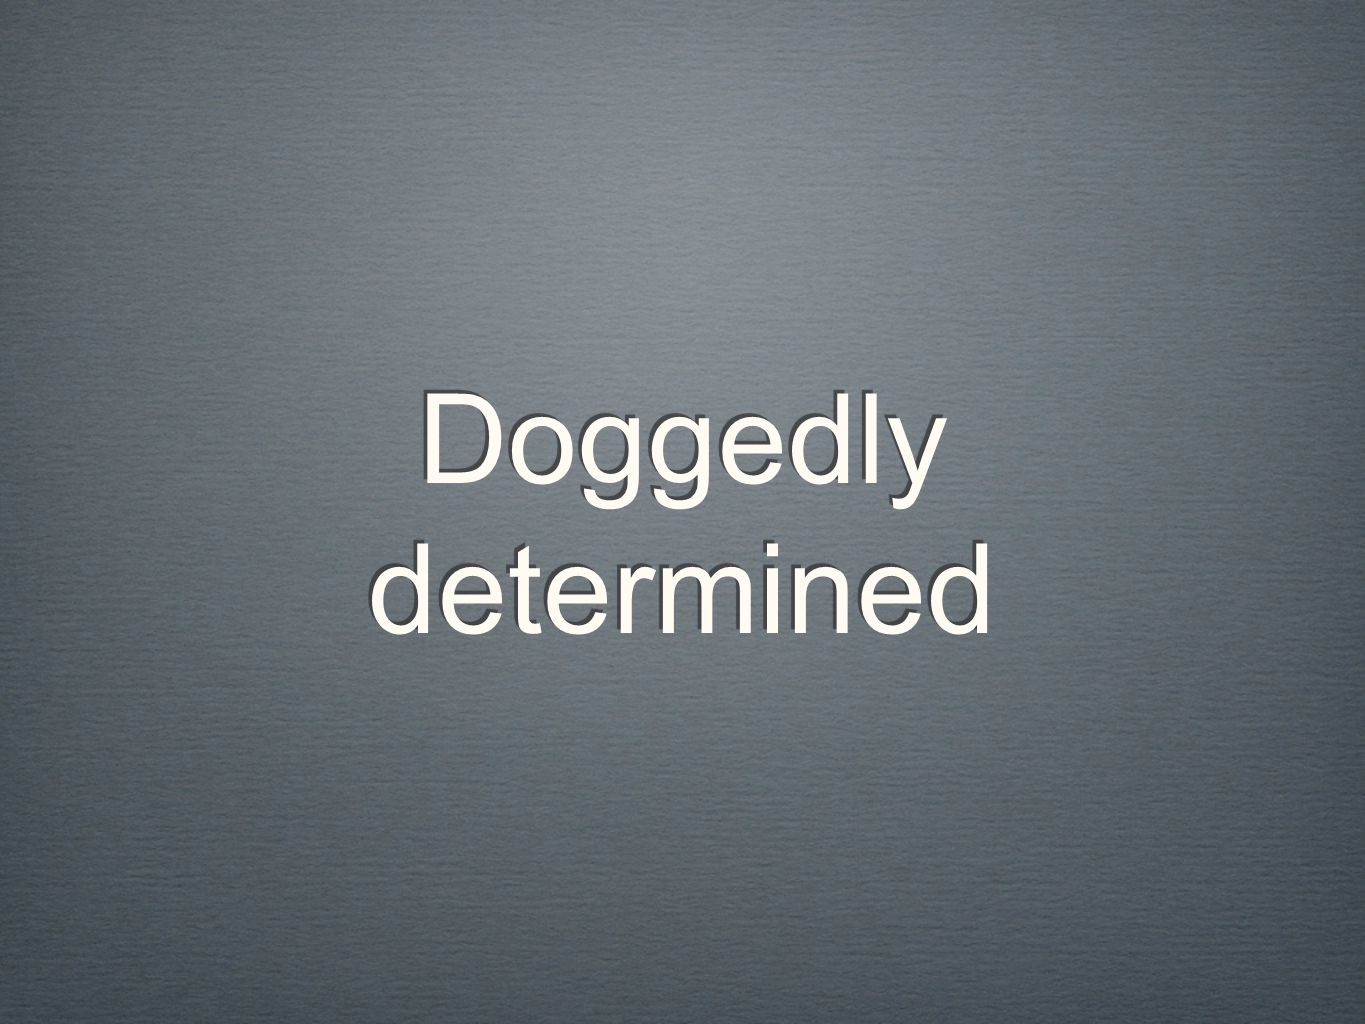 Doggedly determined